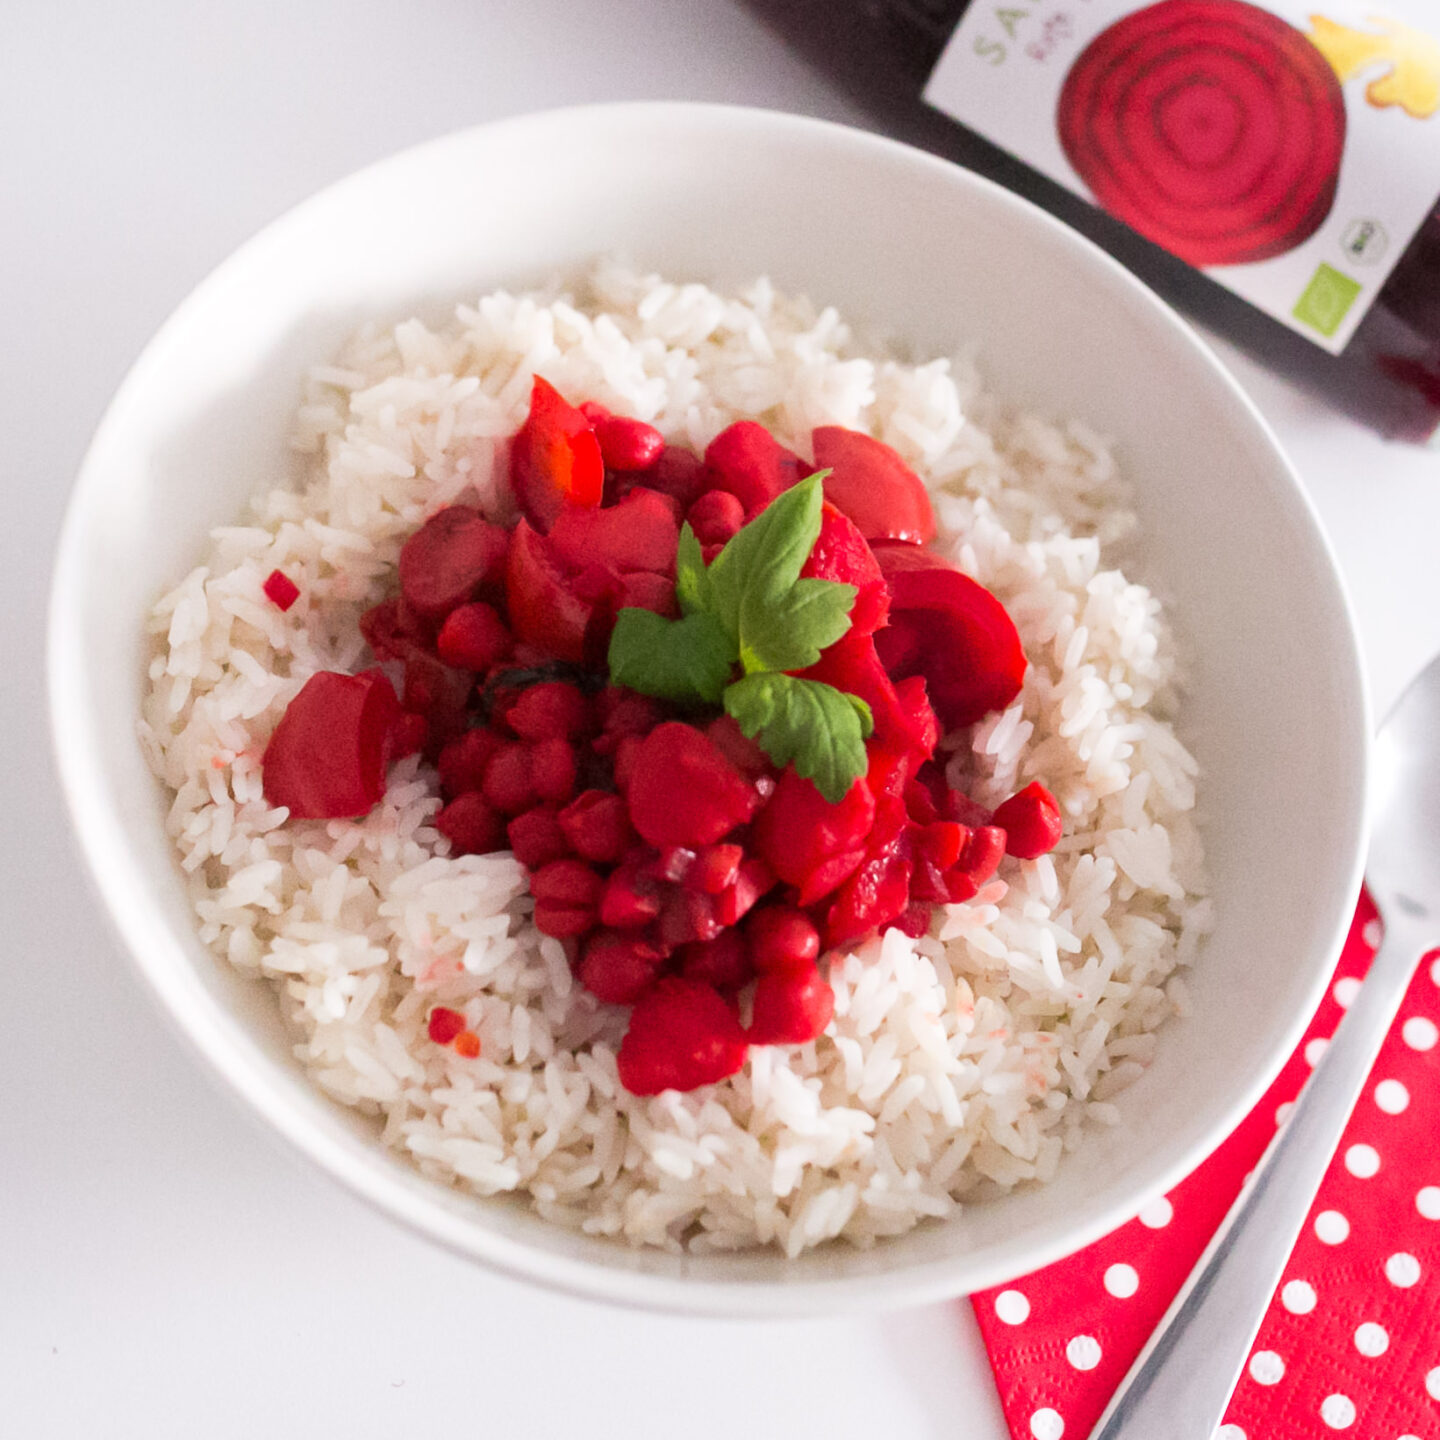 Pinkes Curry mit Rote Beete Saft